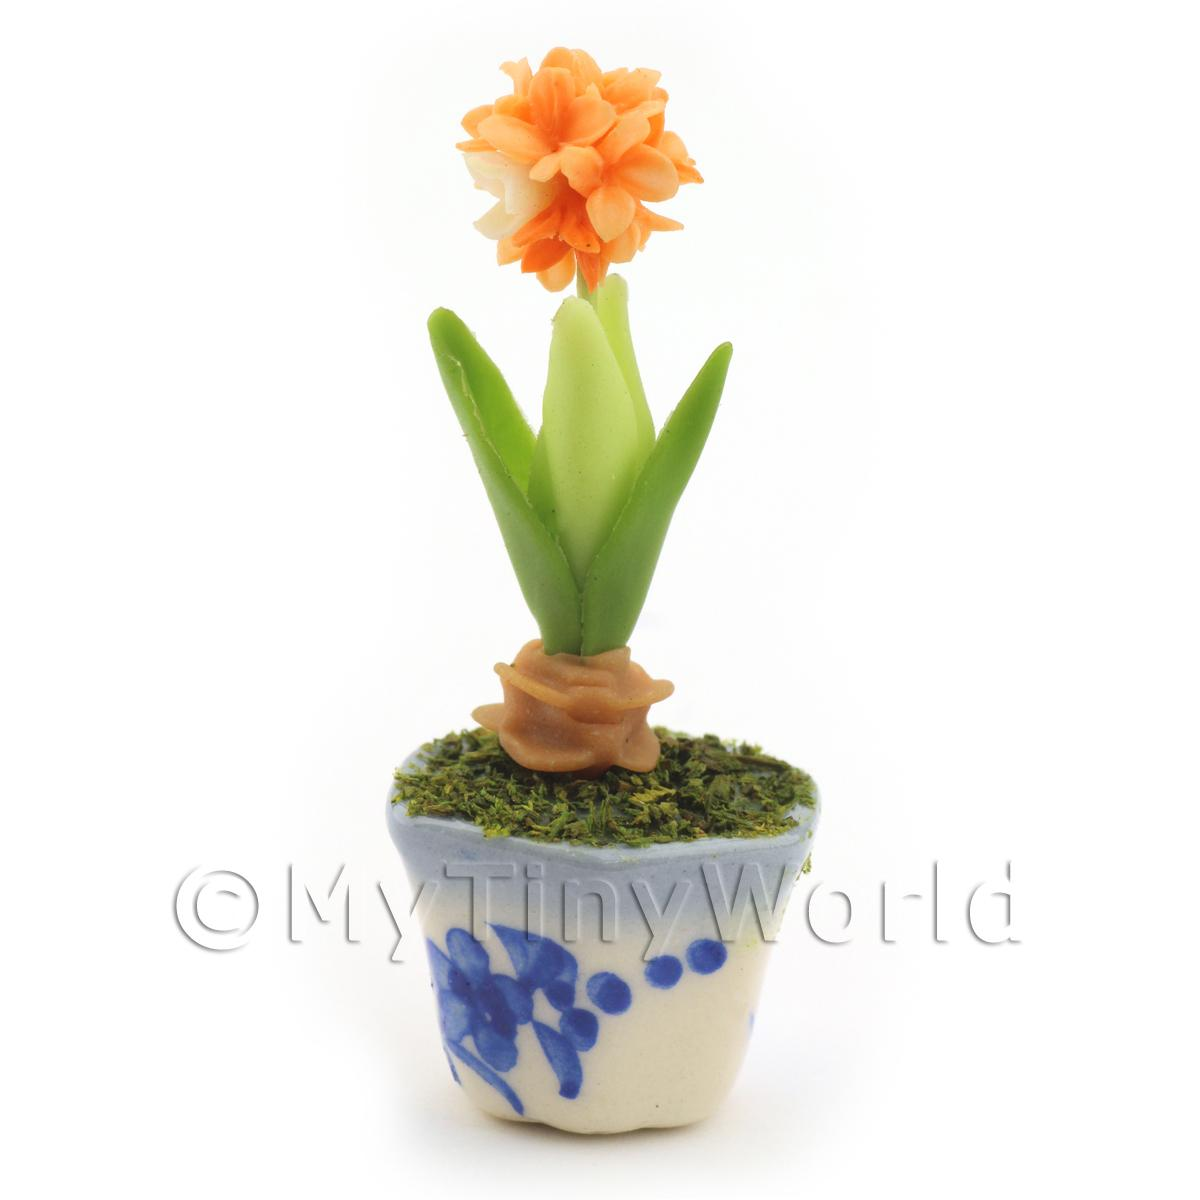 Dolls House Miniature Orange Hydrangea